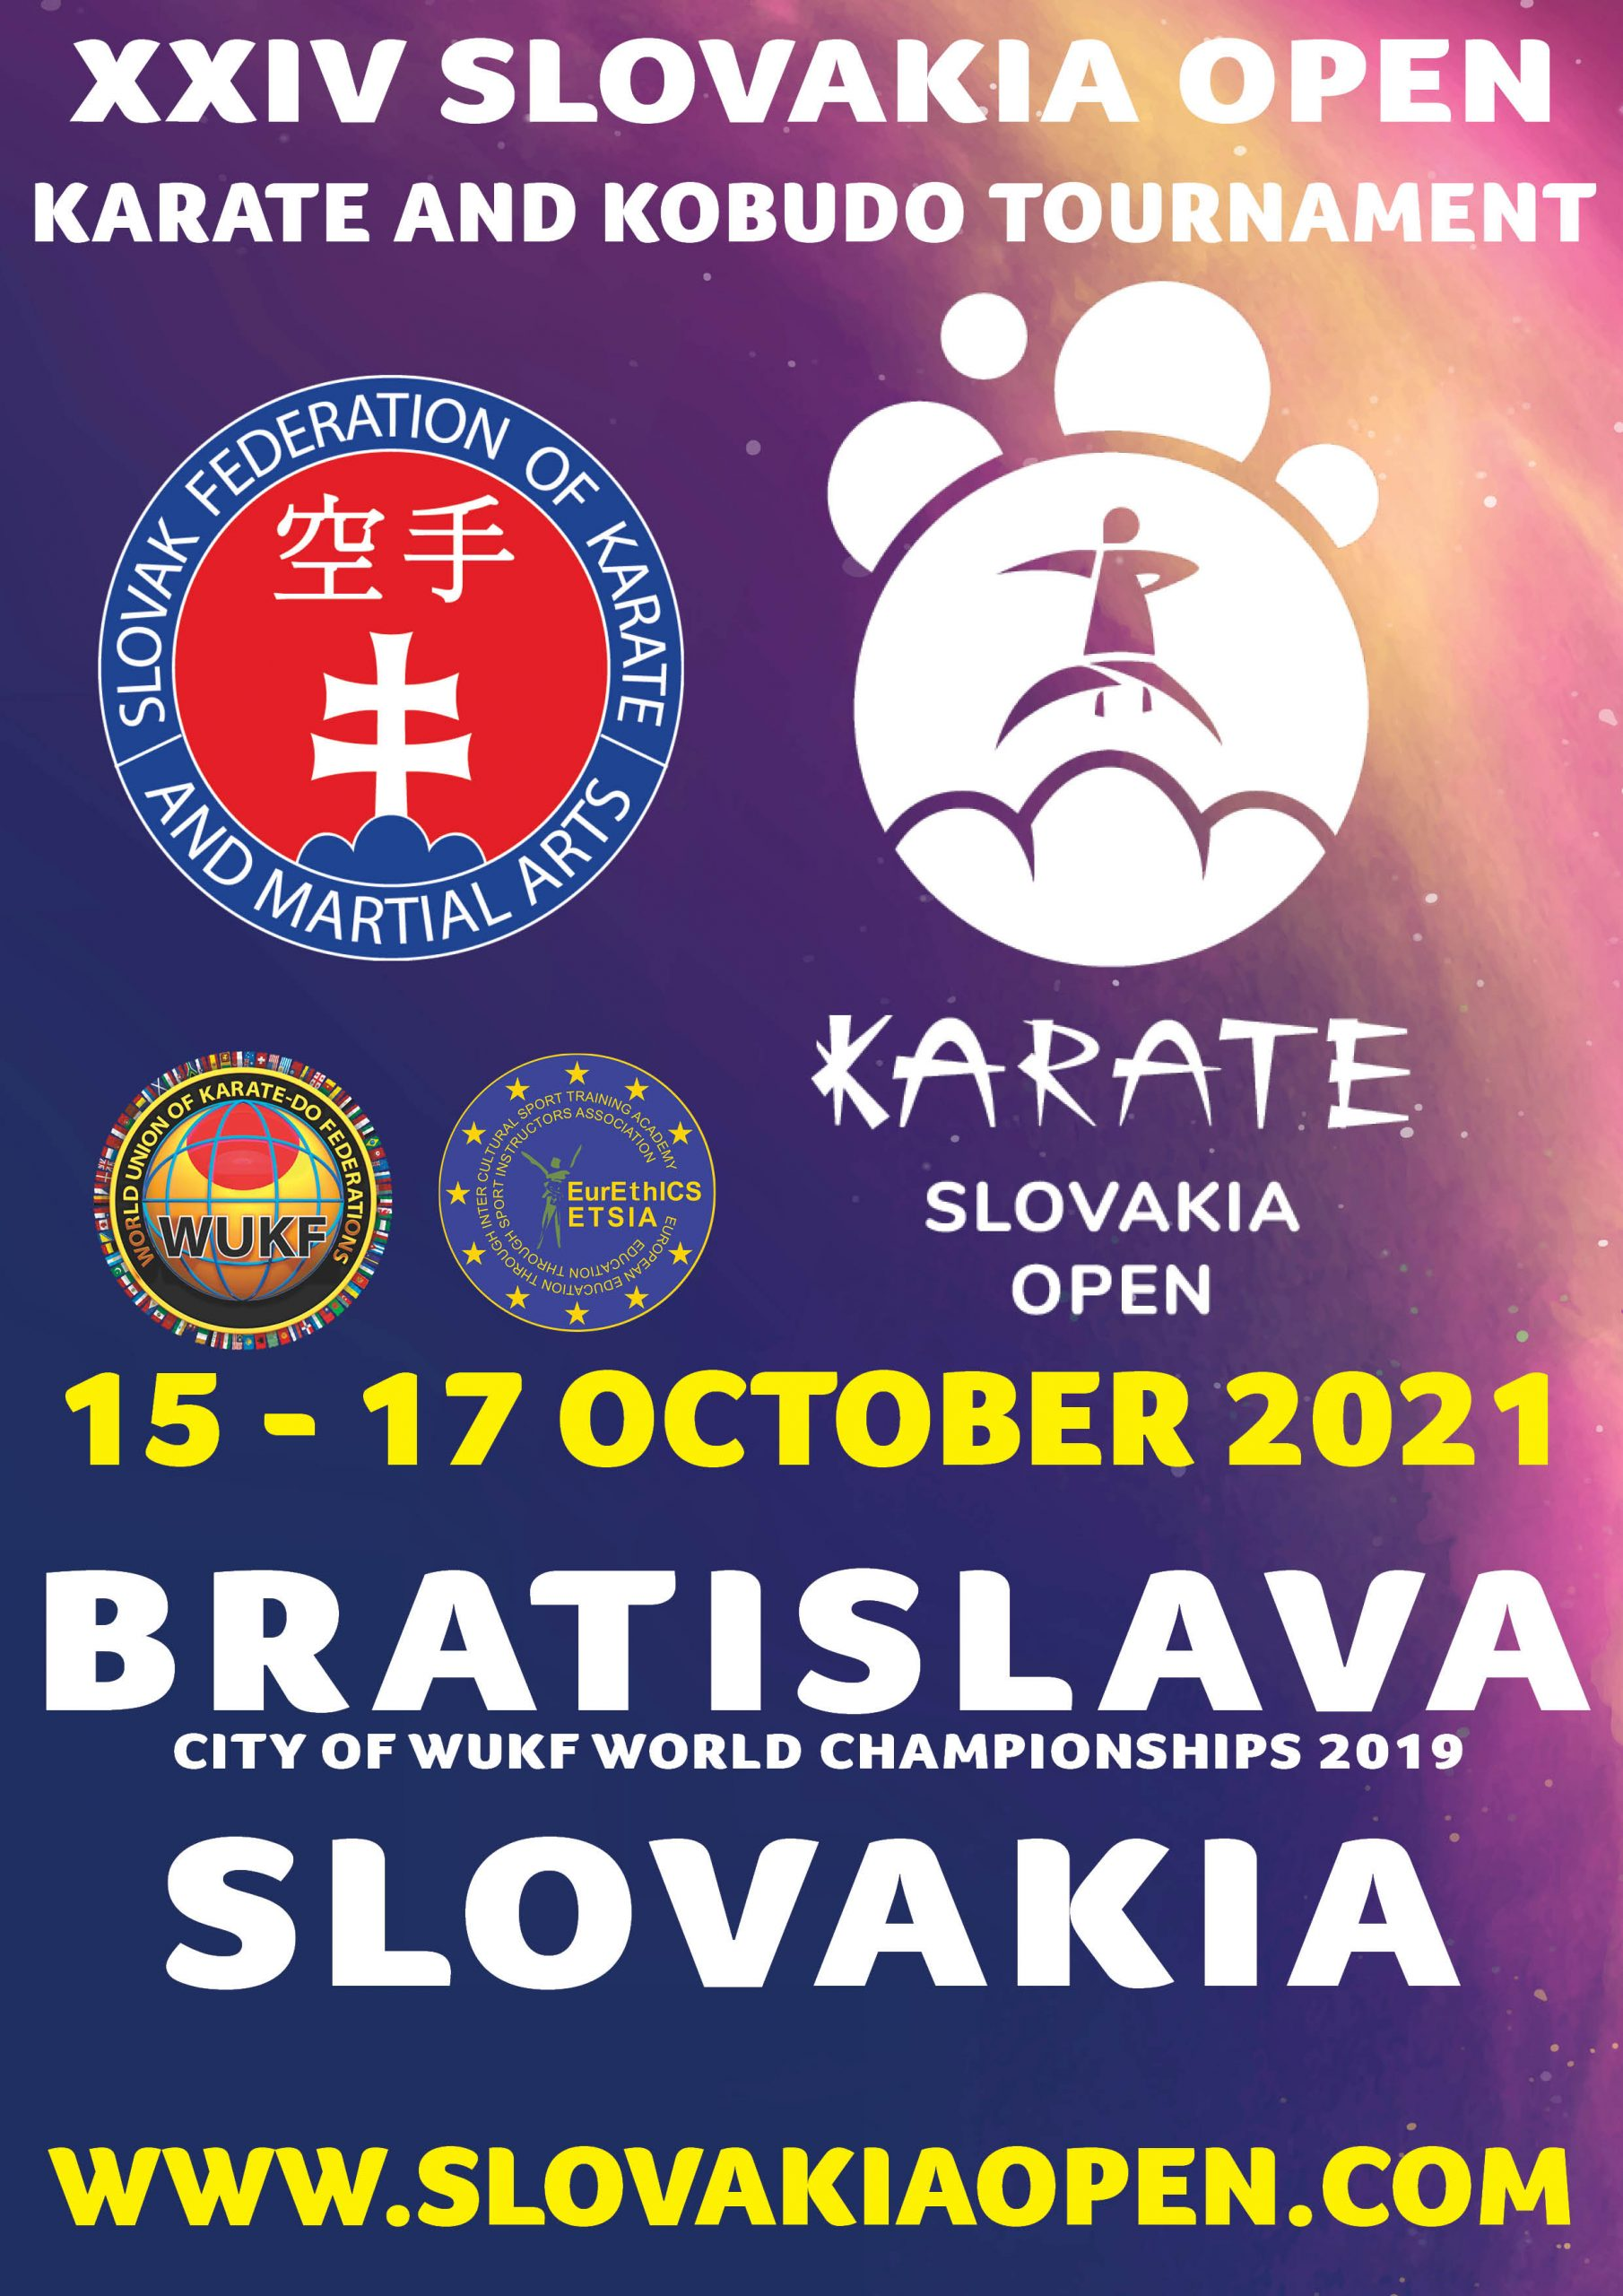 https://karate-slovakia.sk/wp-content/uploads/POSTER_2021-scaled.jpg